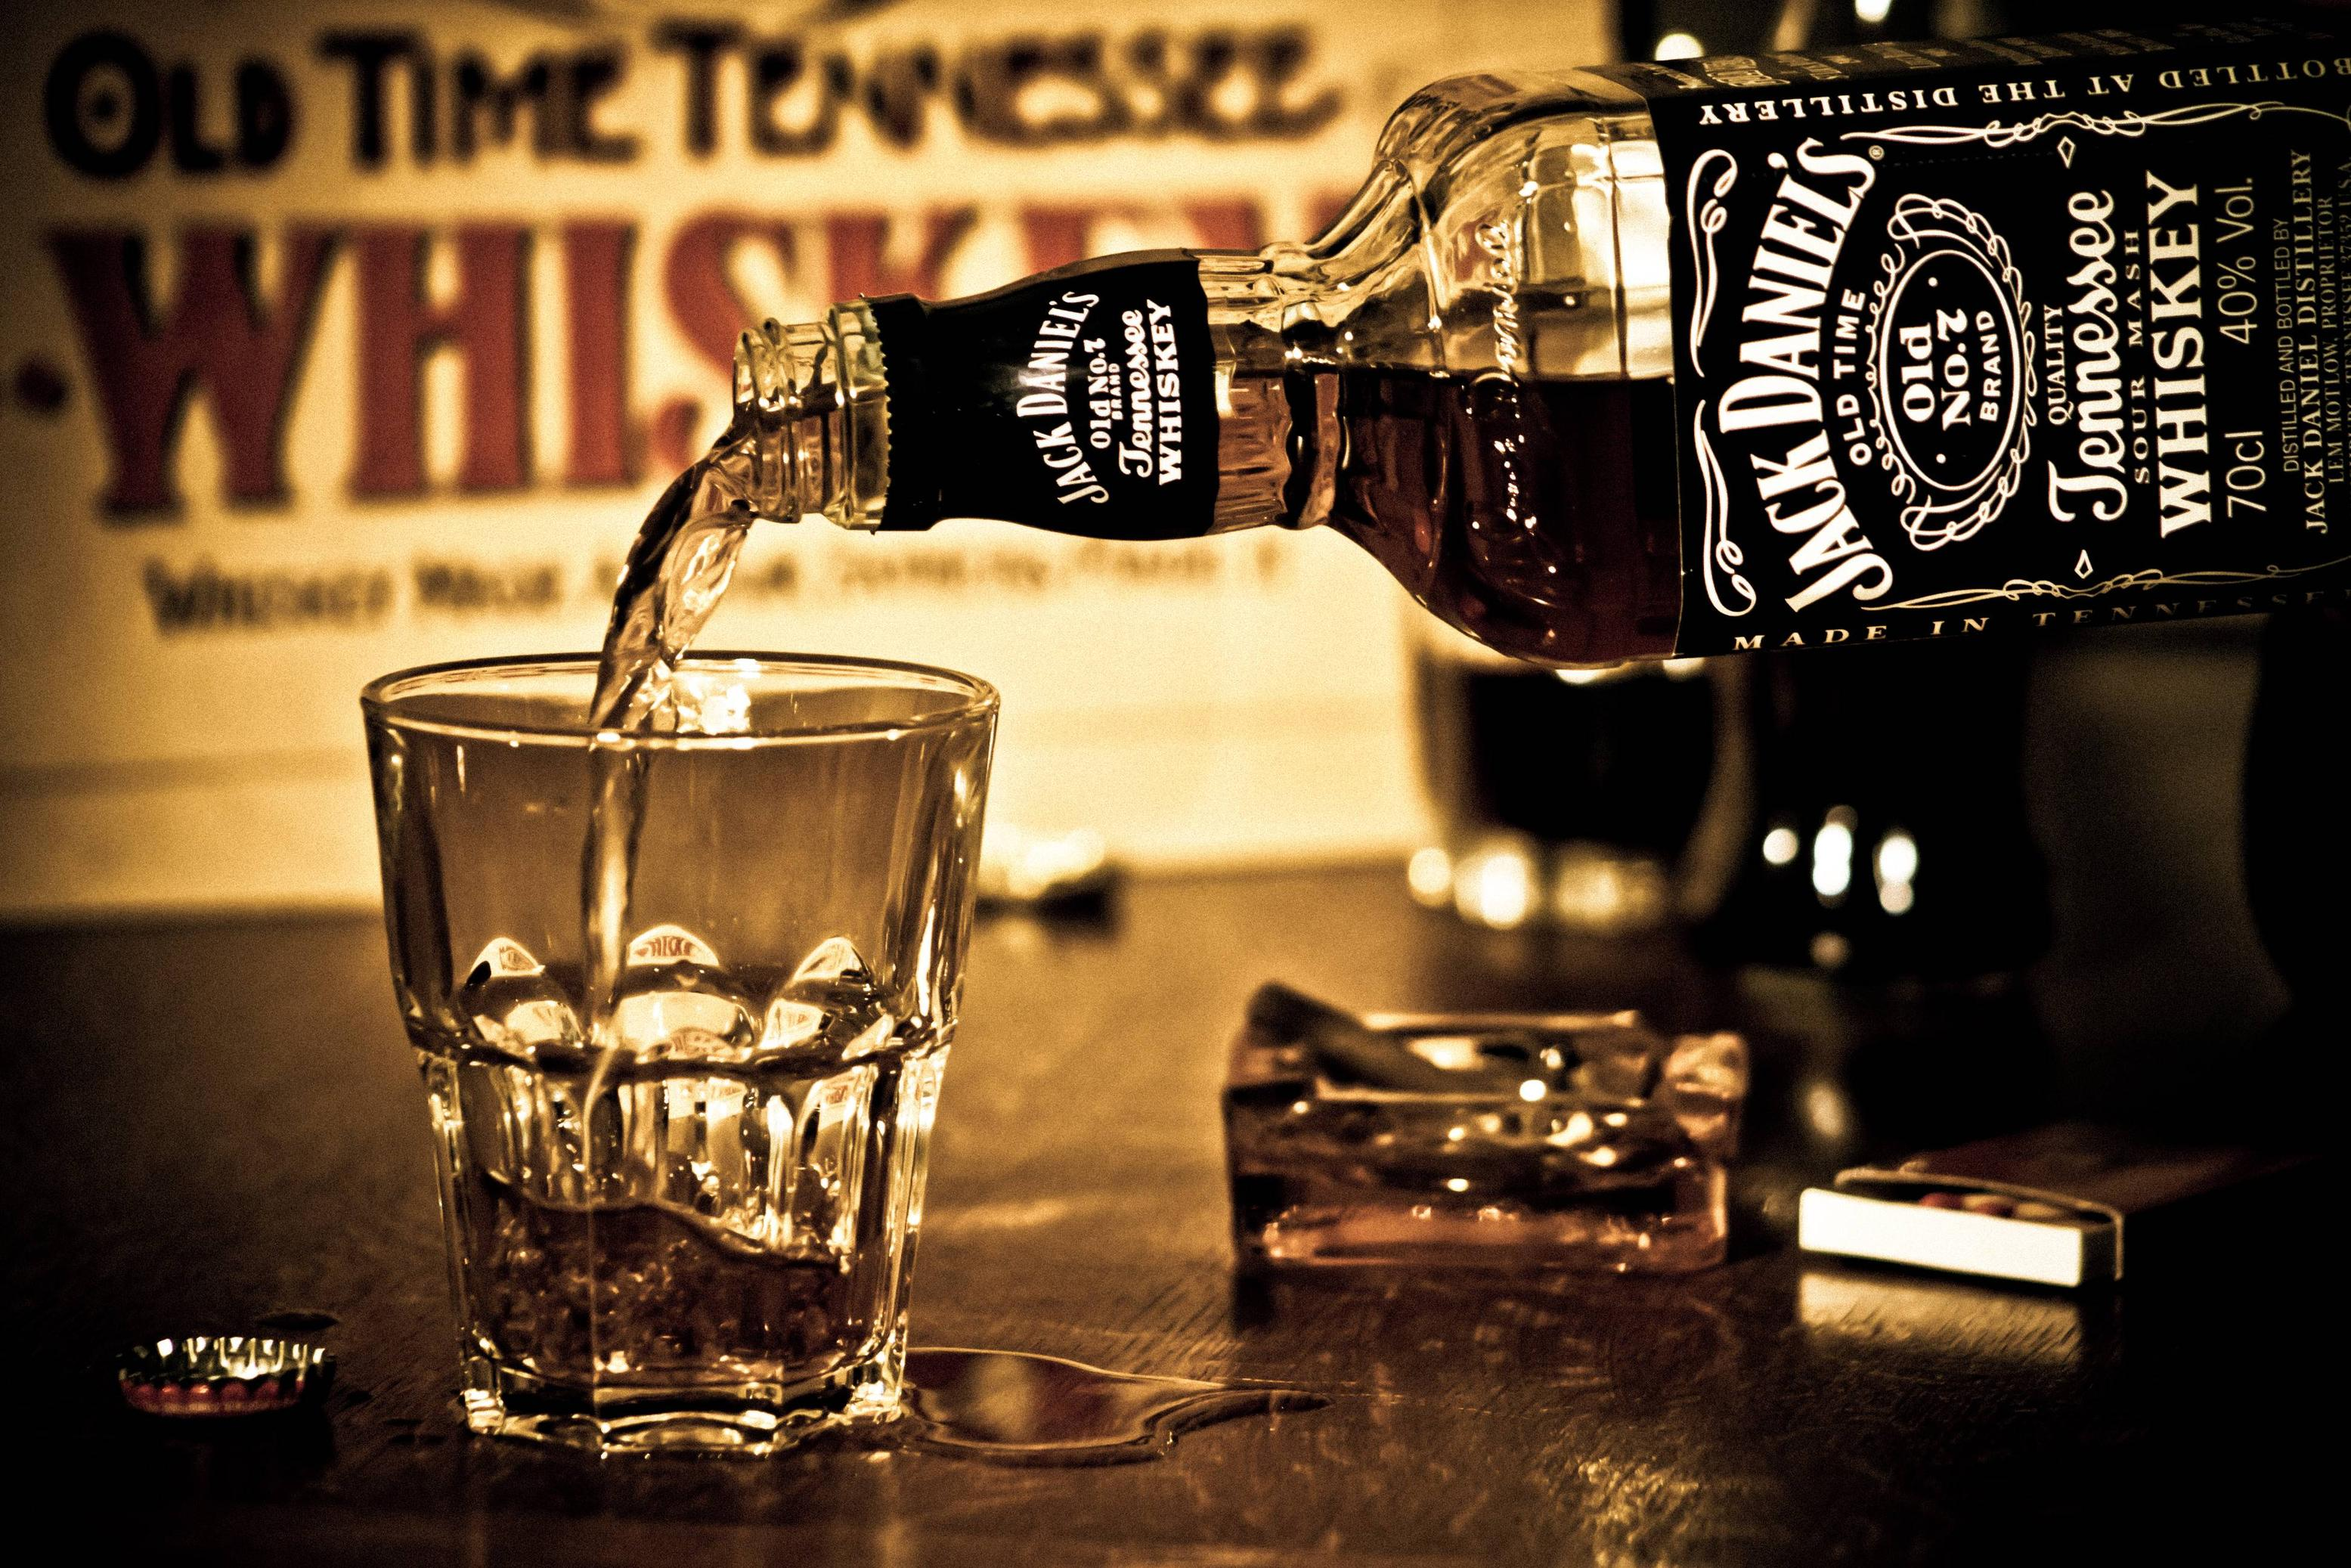 Jack Daniels Wallpaper For Iphone Jack Daniel S Wallpapers High Quality Download Free